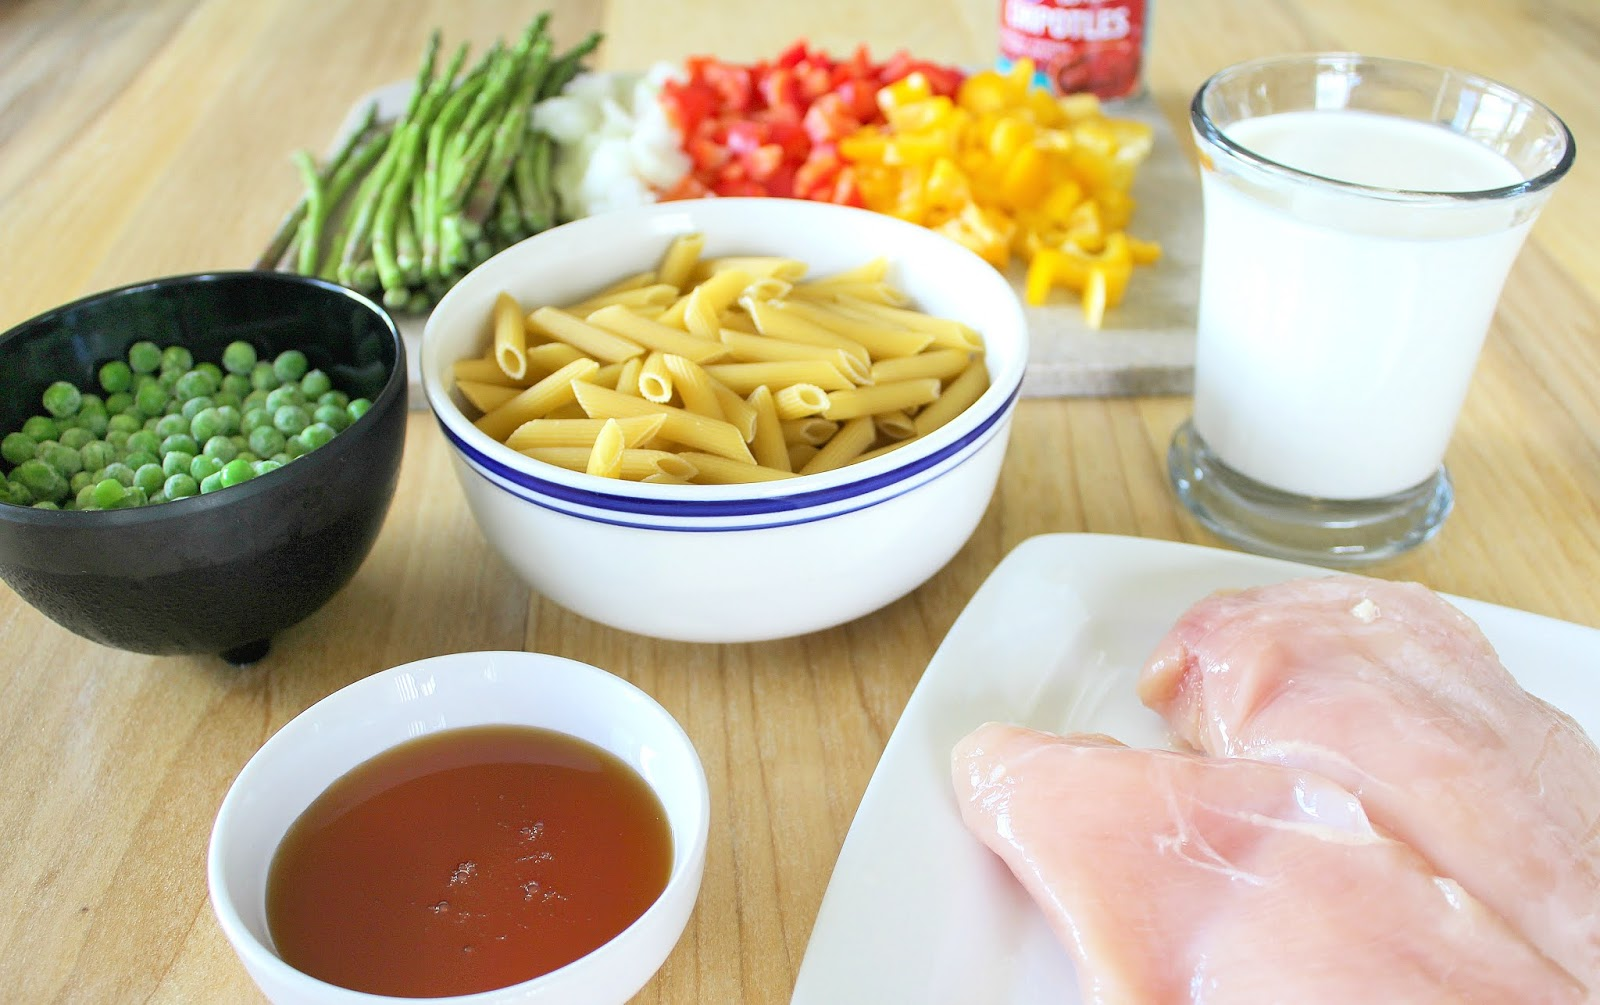 ingredients for chicken chipotle pasta